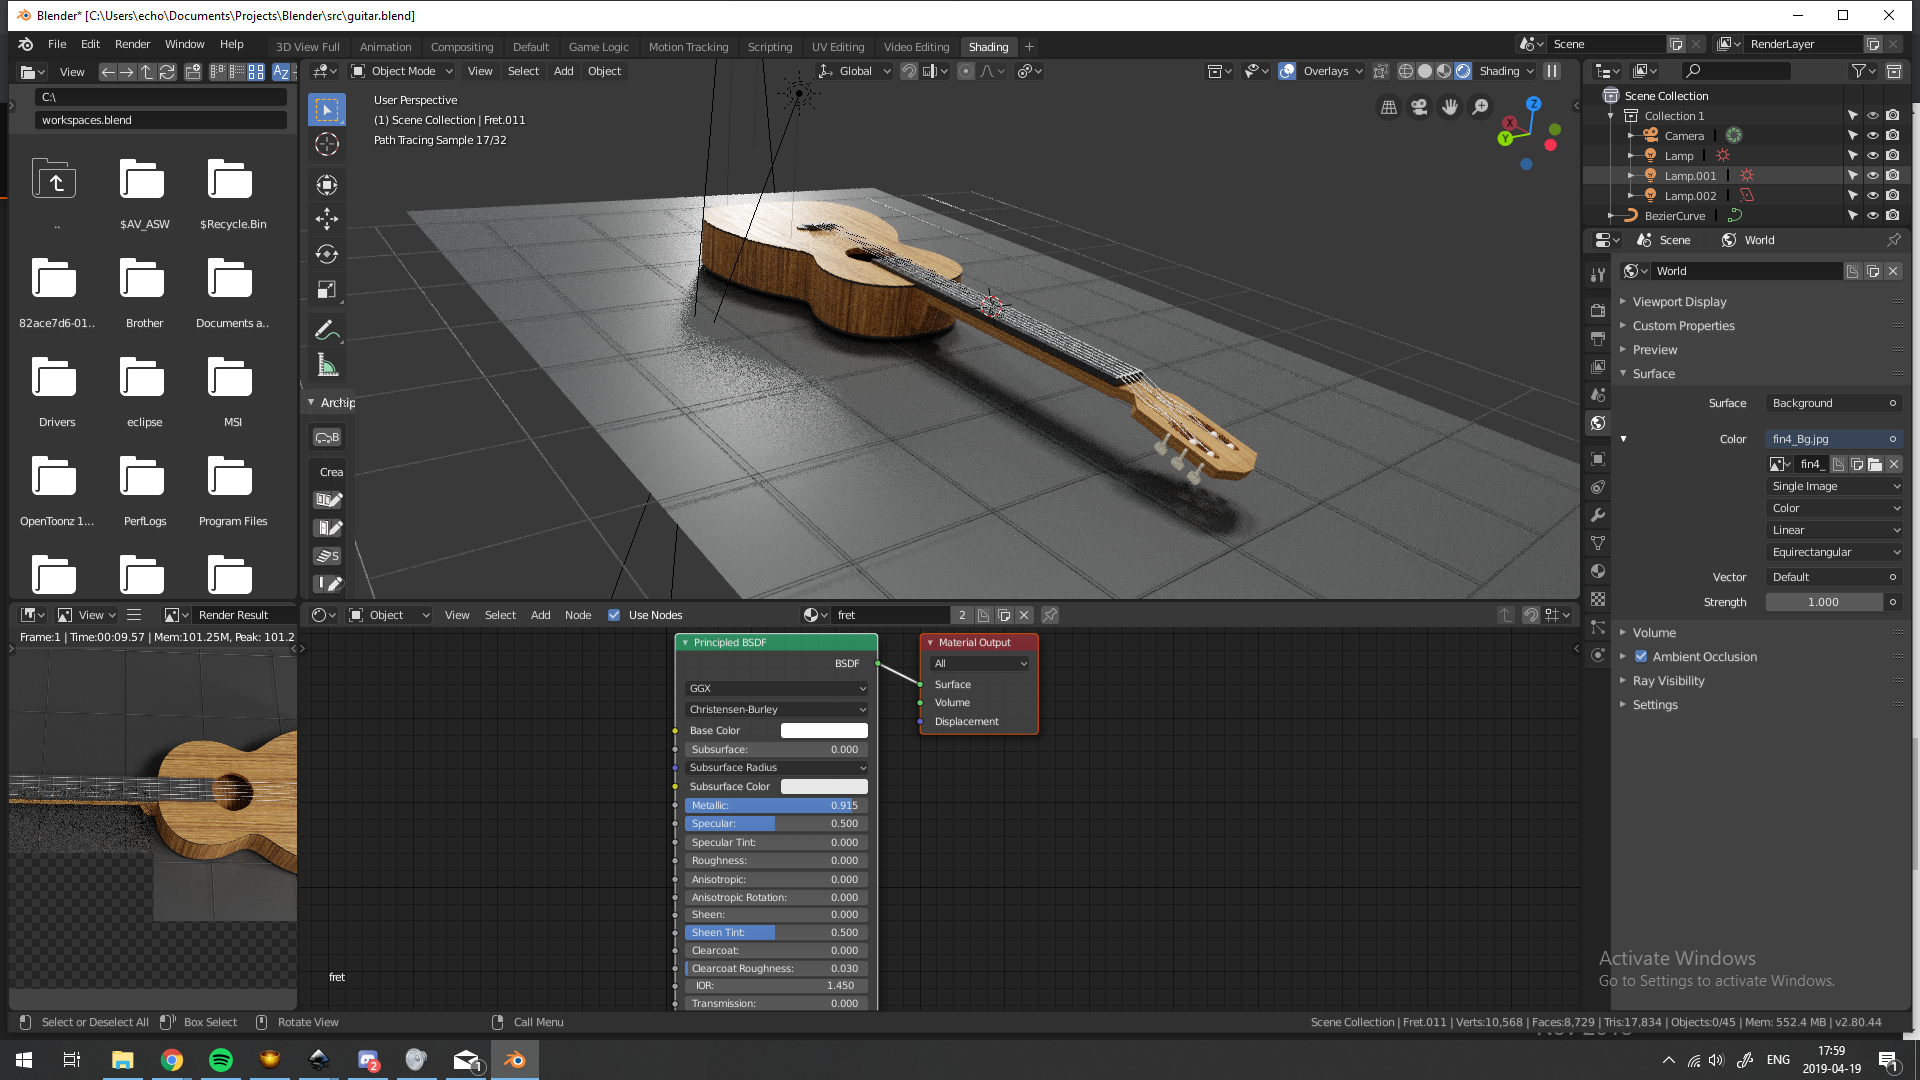 https://d33wubrfki0l68.cloudfront.net/c9fa0a6b2e0da8cb5a35246c577e28398da97060/cba28/post/modelling-a-simple-guitar-in-blender-2-8-part-1/images/guitar_proc.png